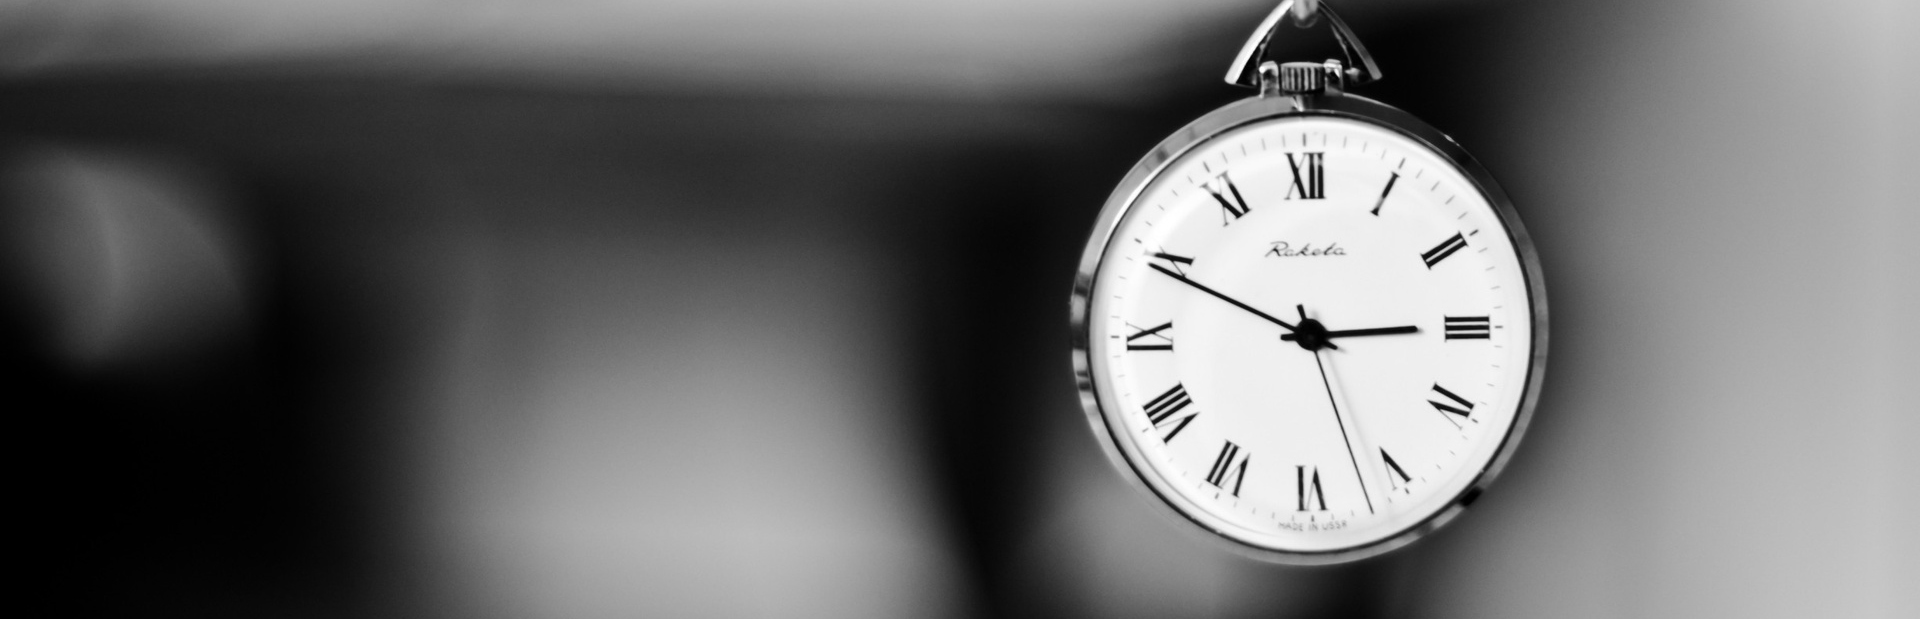 Pocket watch - Analytics in real-time is crucial for native advertising campaigns